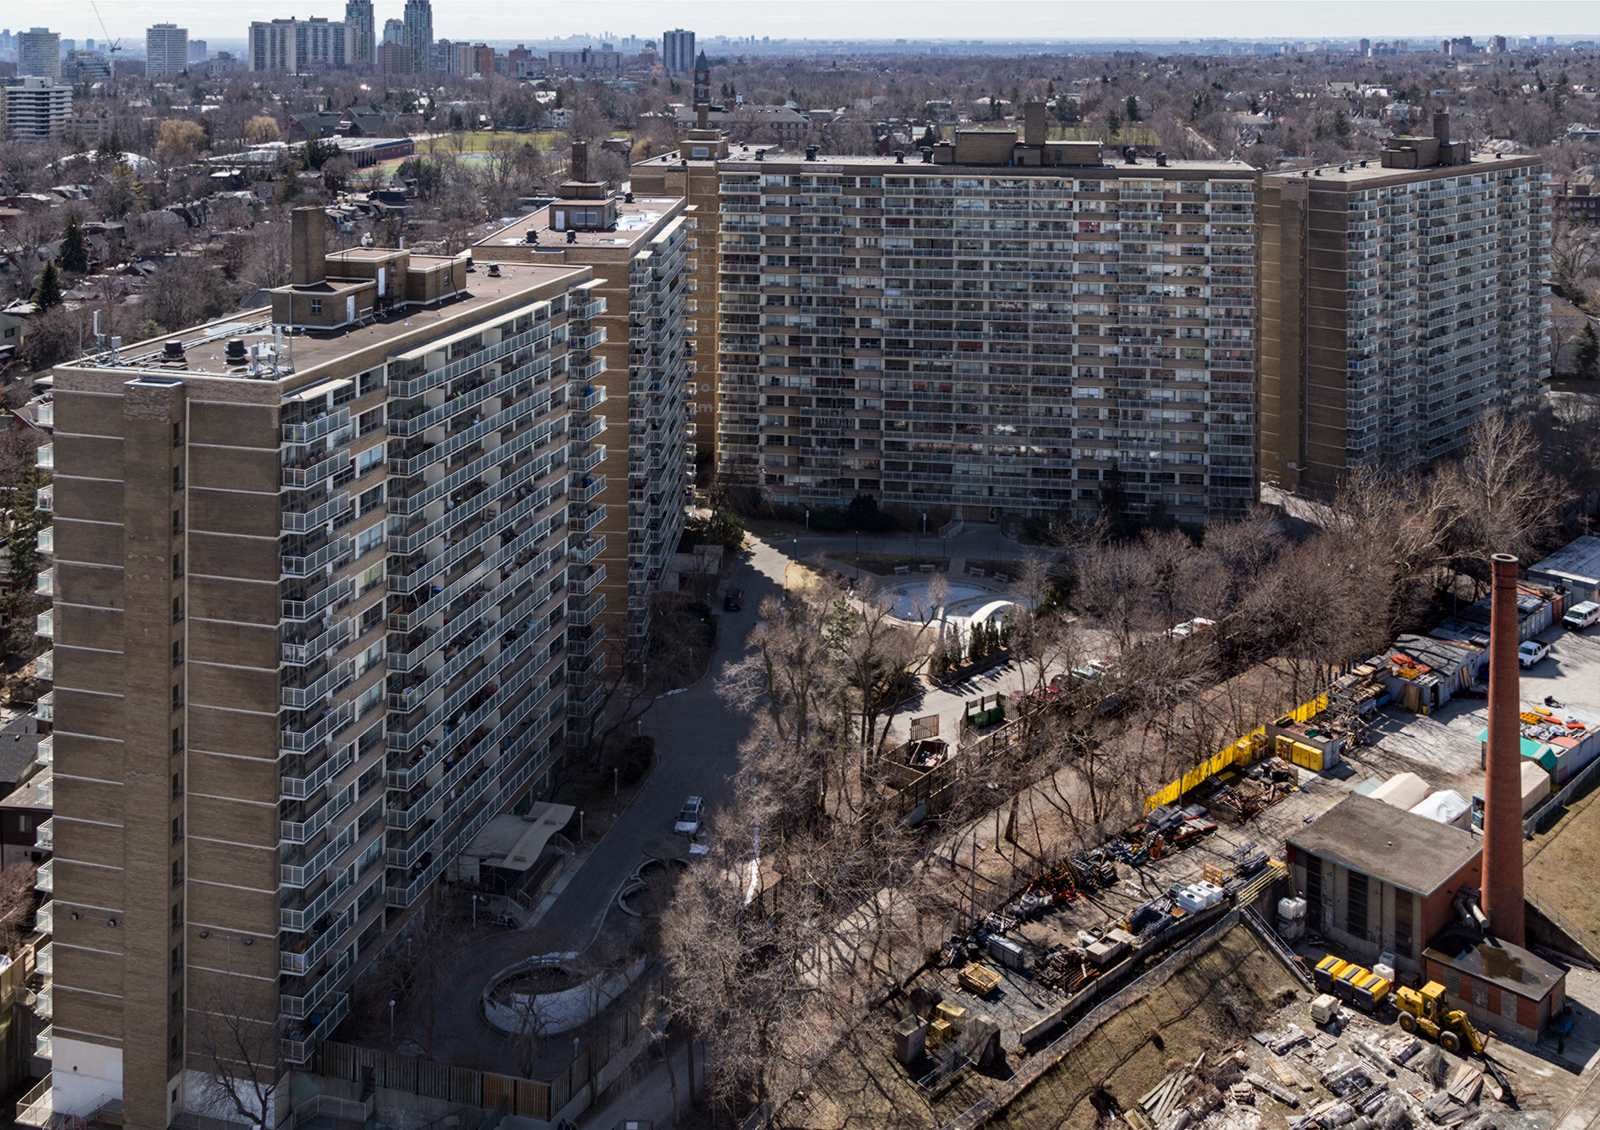 20160426. An aerial view of the Brentwood Towers in Toronto's Wa